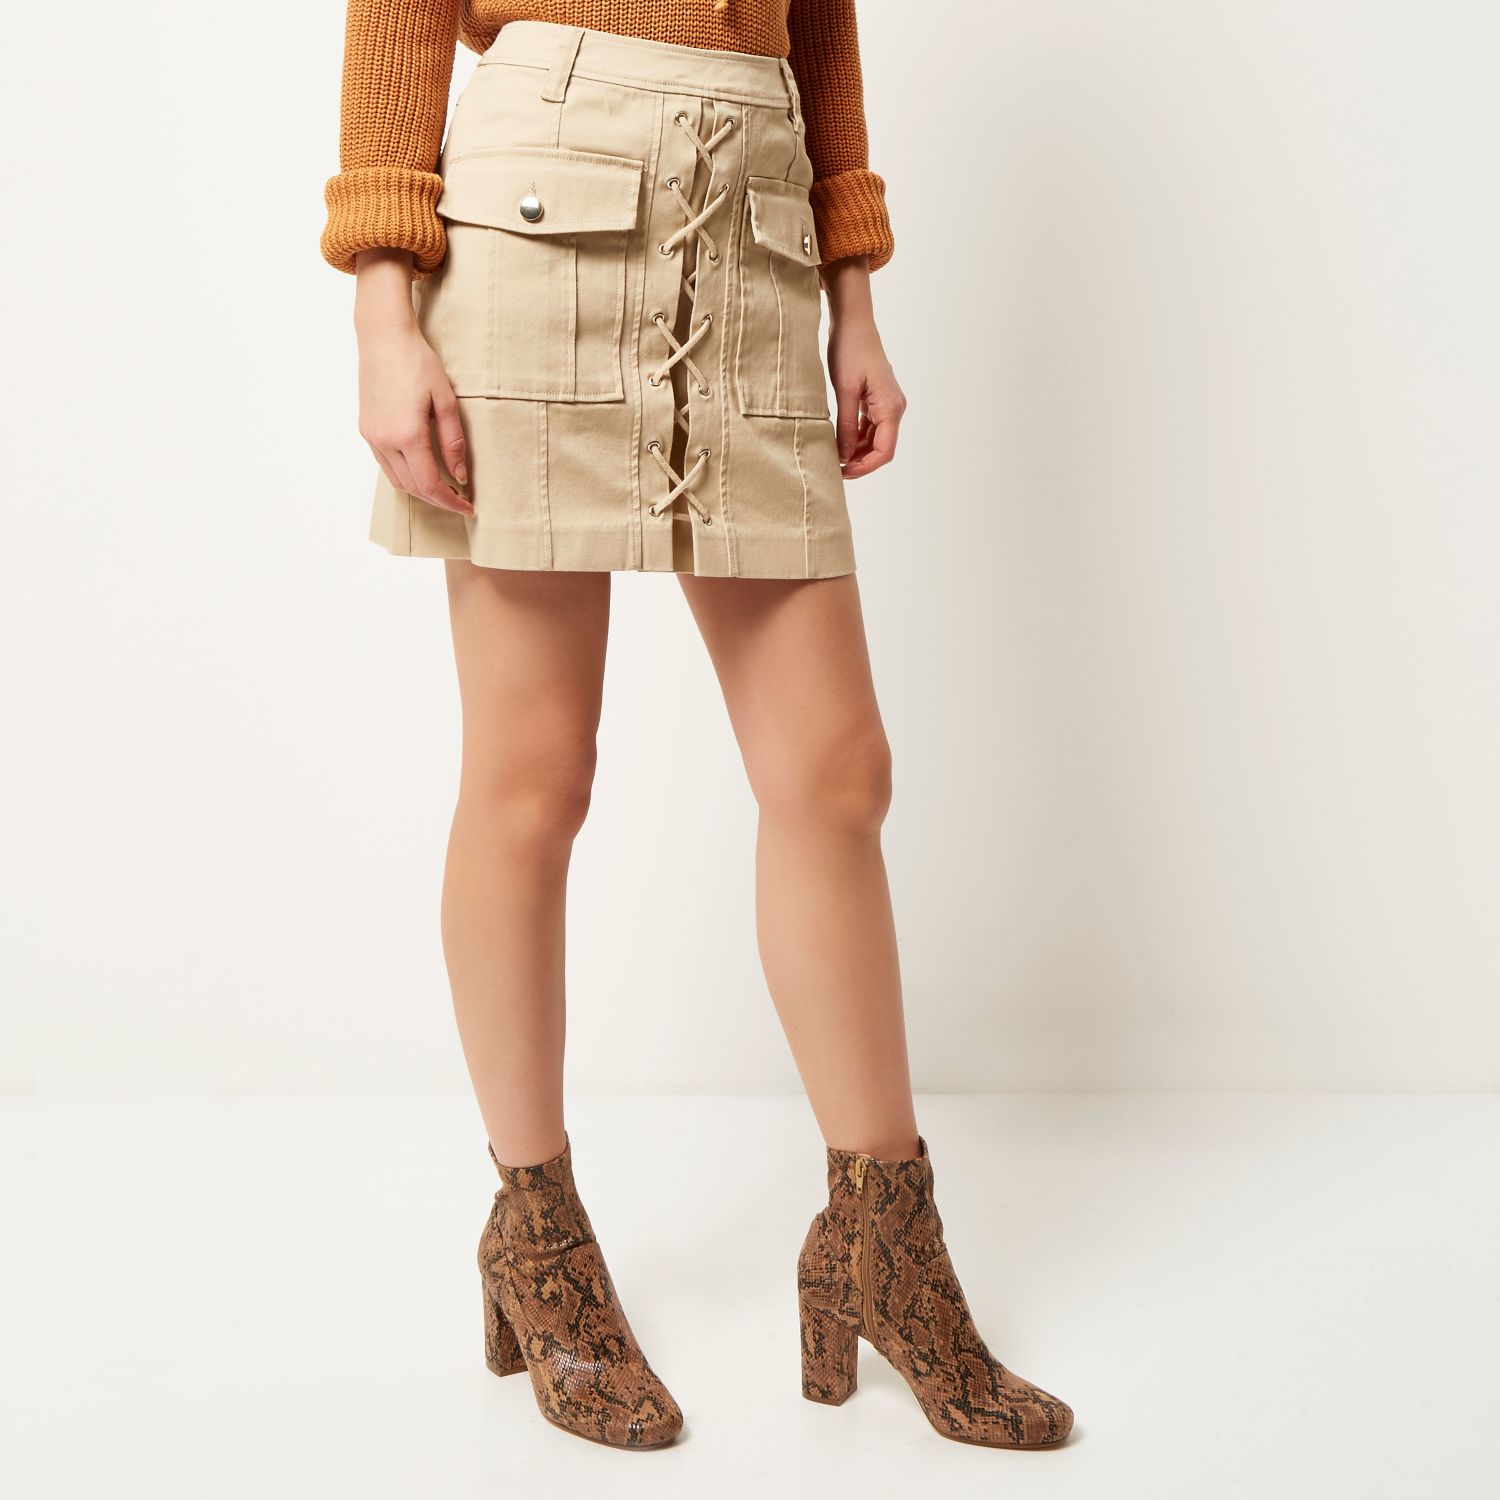 River island Beige Lace-up Utility Mini Skirt in Natural | Lyst